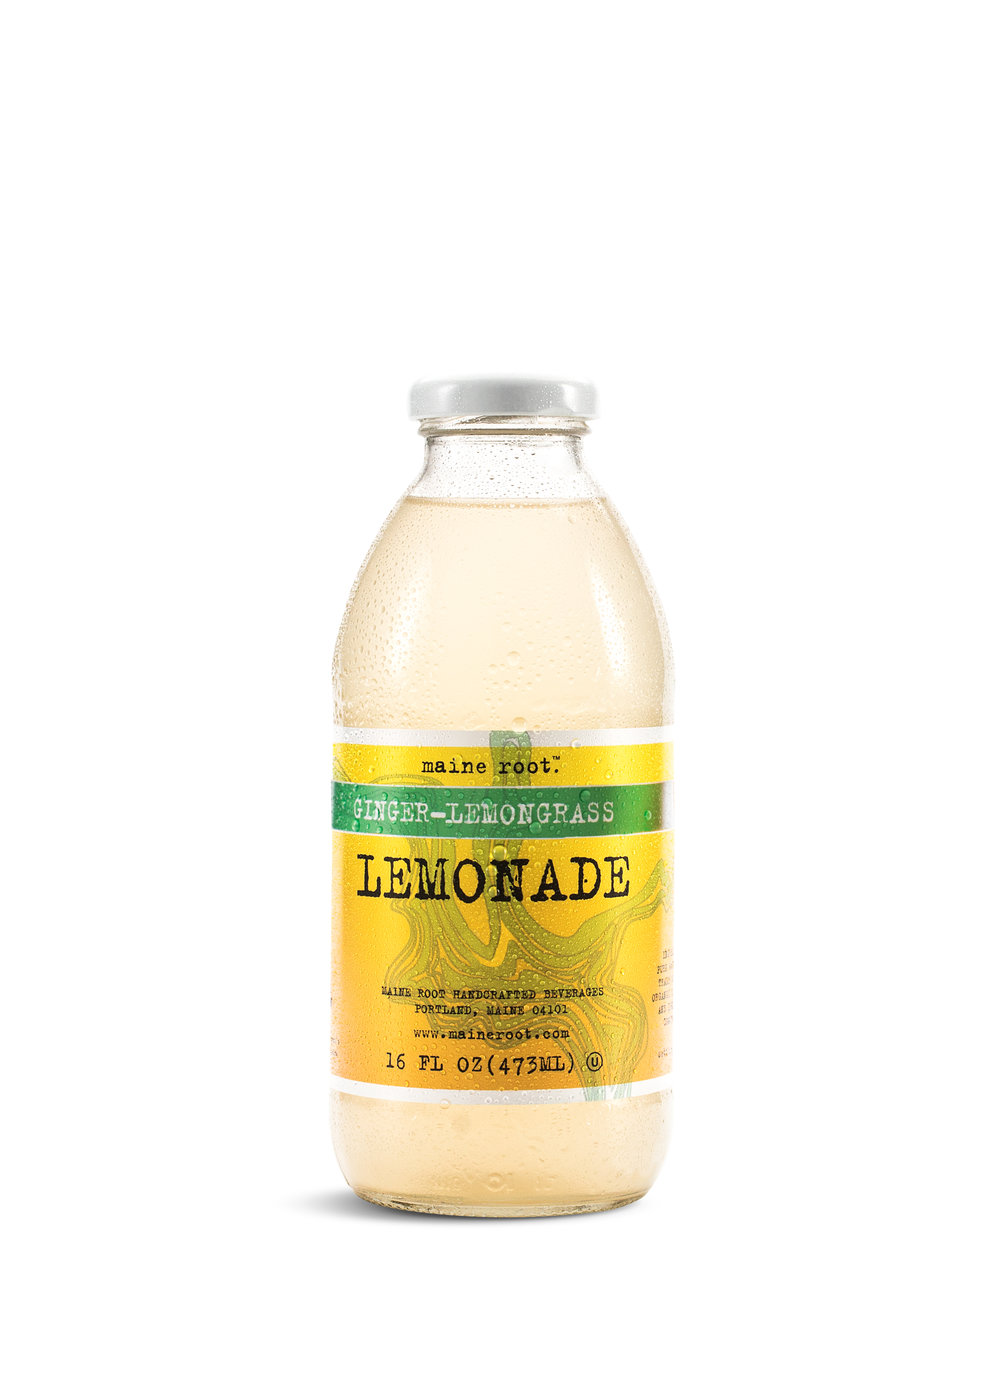 lemonade-lemongrass-single-white.jpg